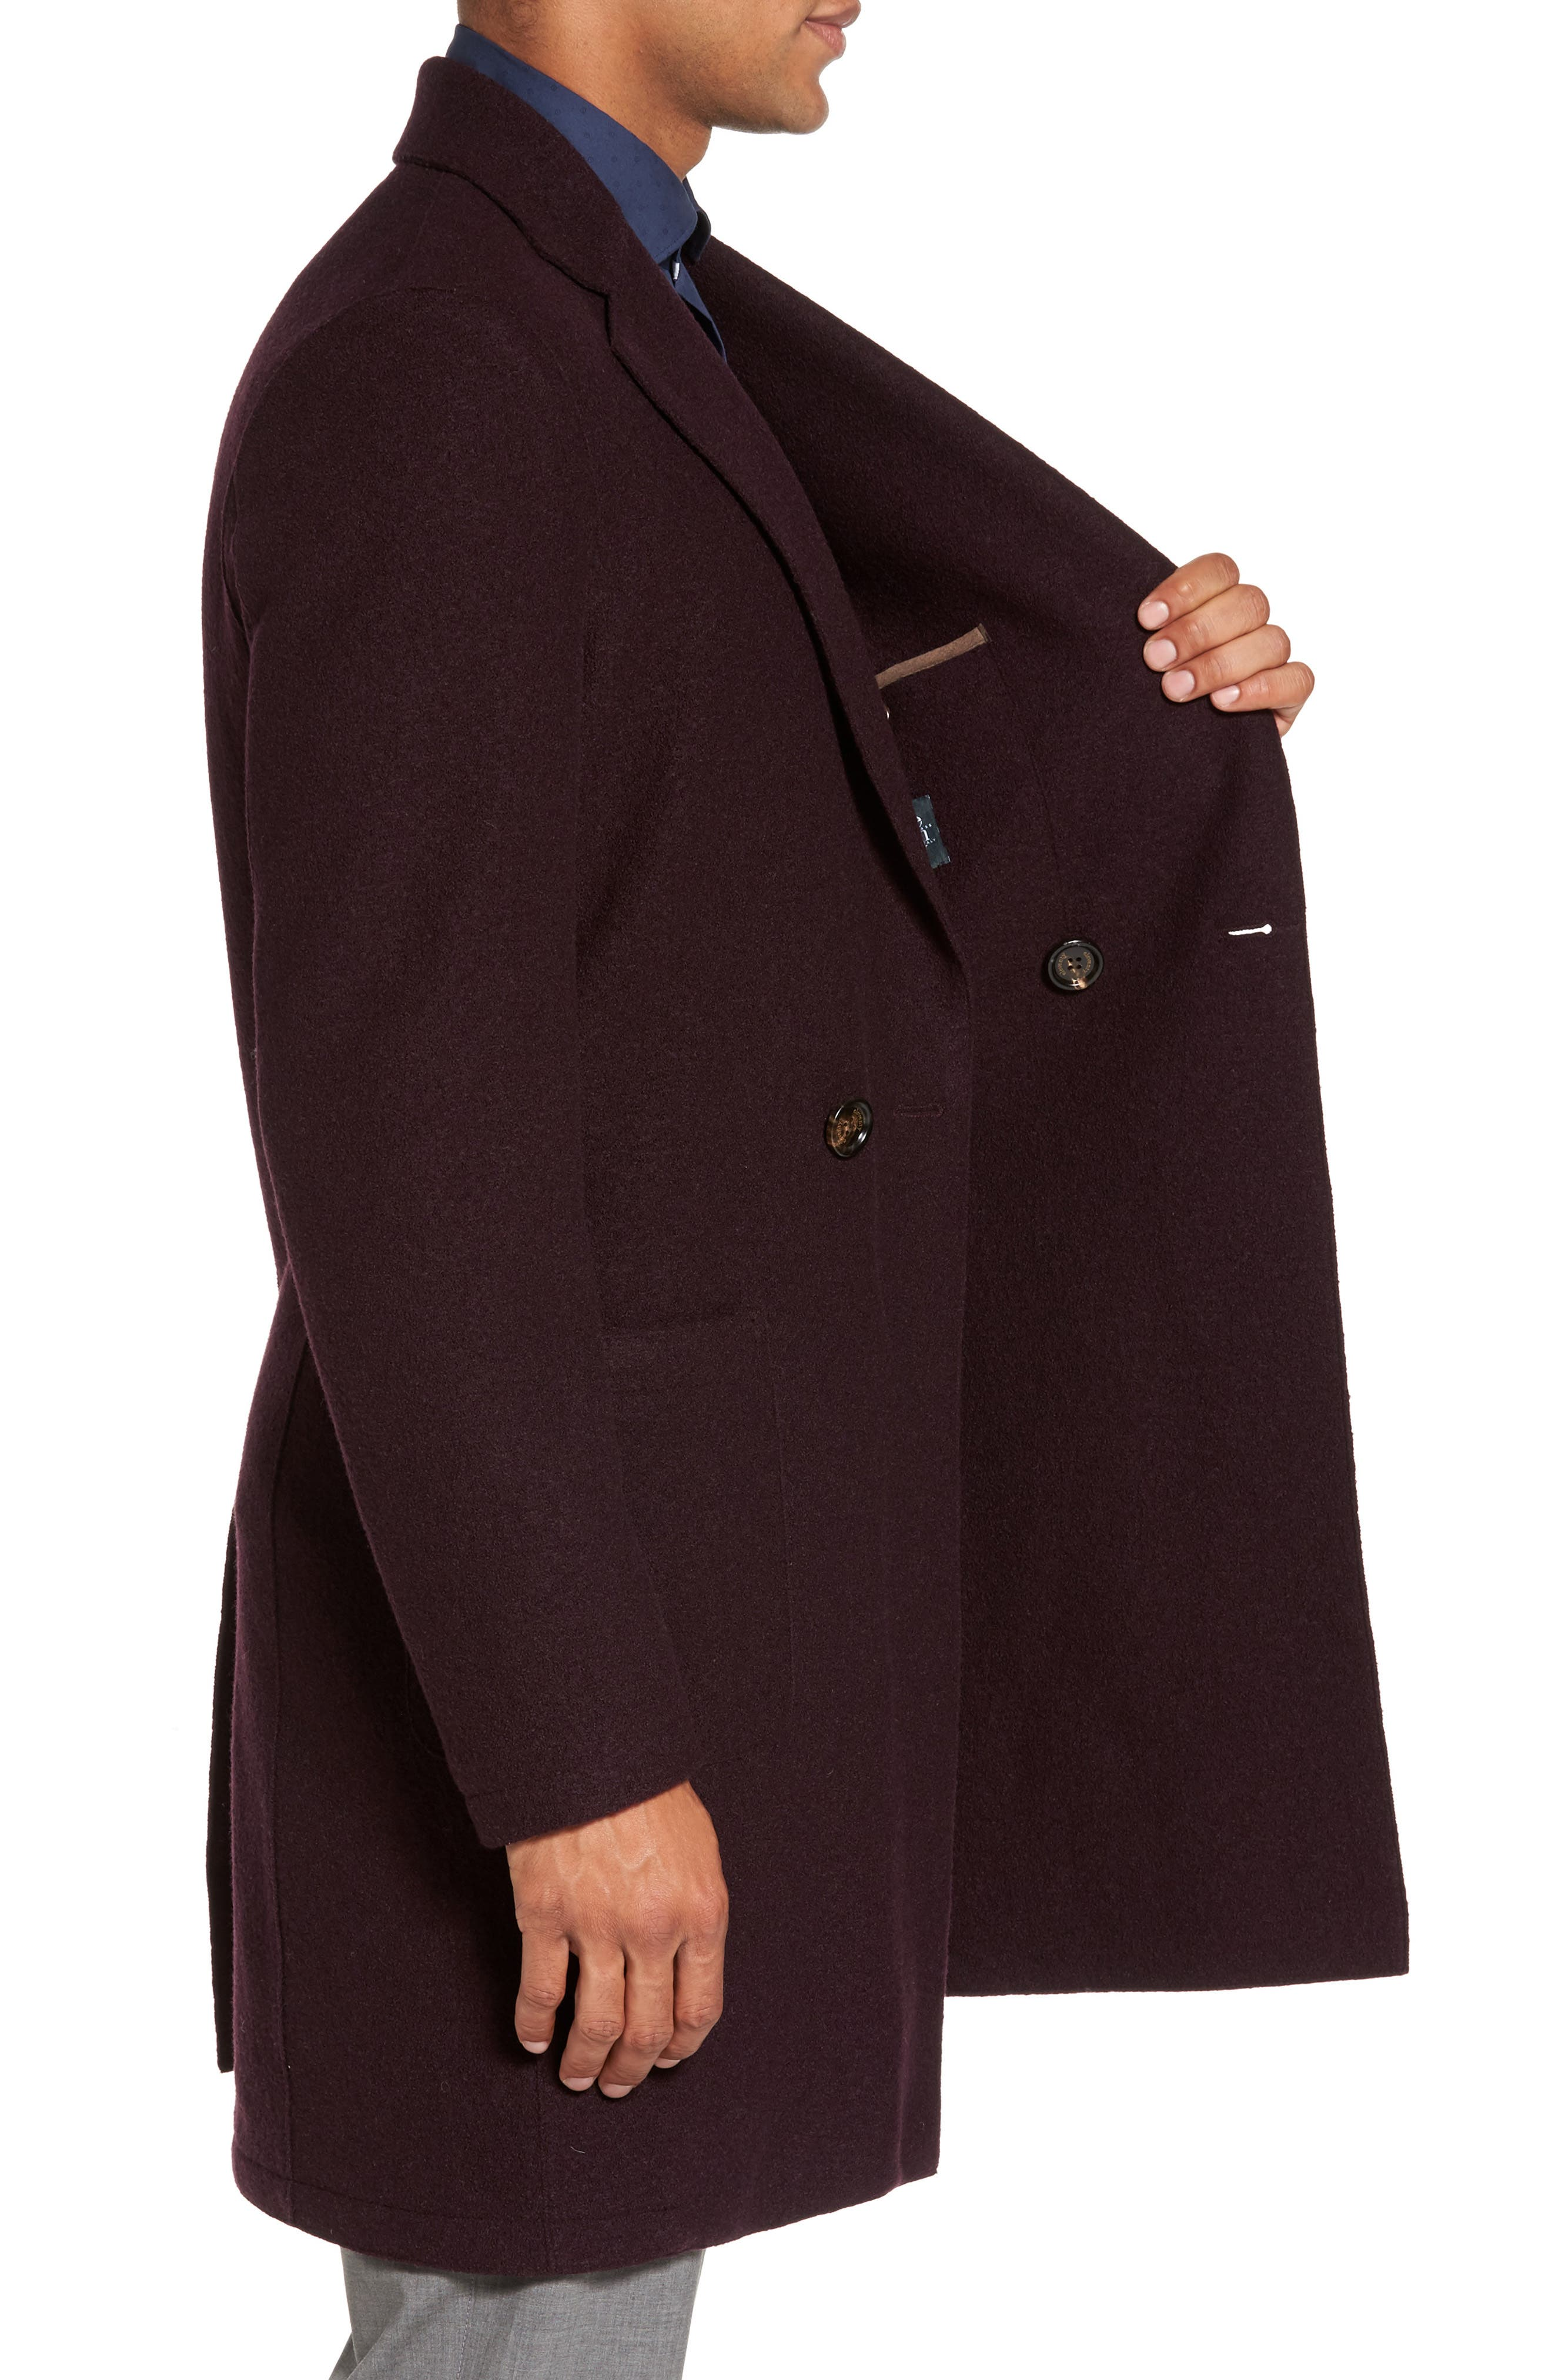 Boiled Wool Double Breasted Topcoat,                             Alternate thumbnail 3, color,                             930